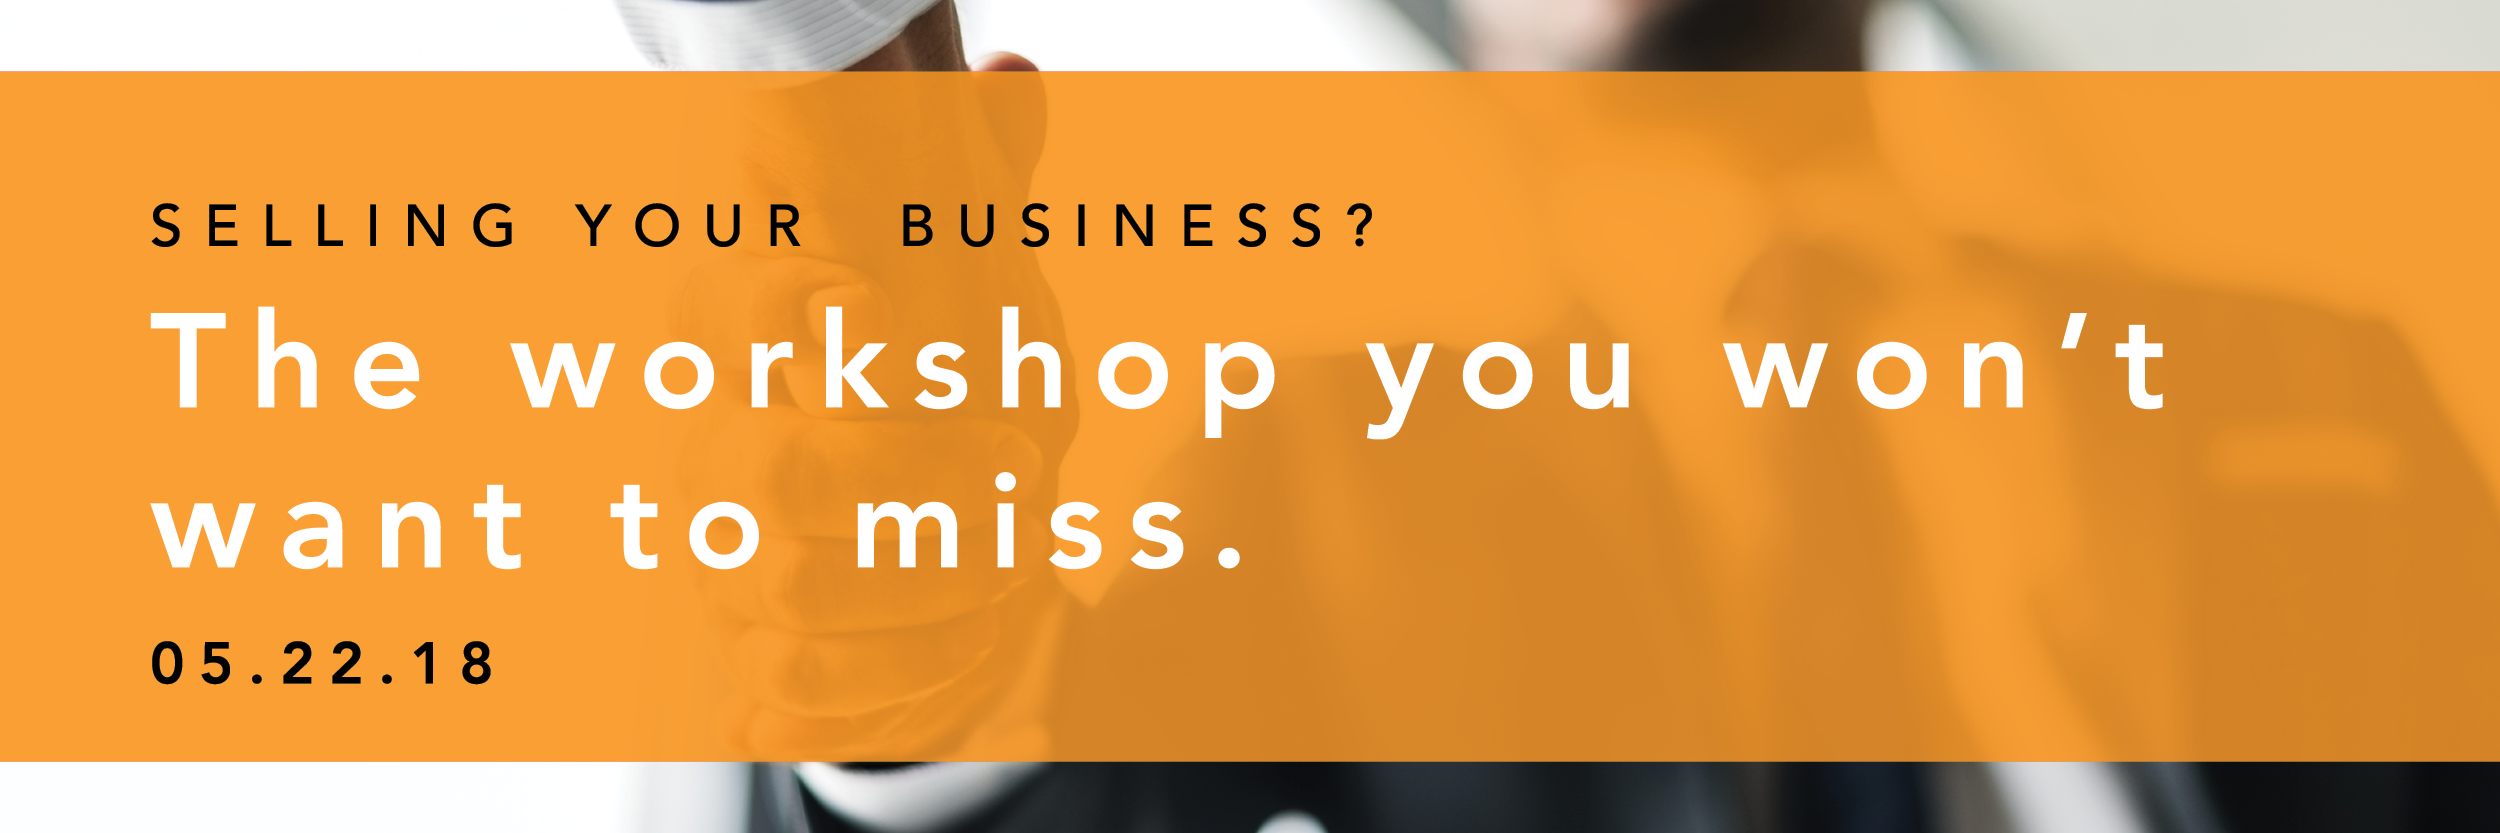 Selling Your Business Workshop May 22 2018